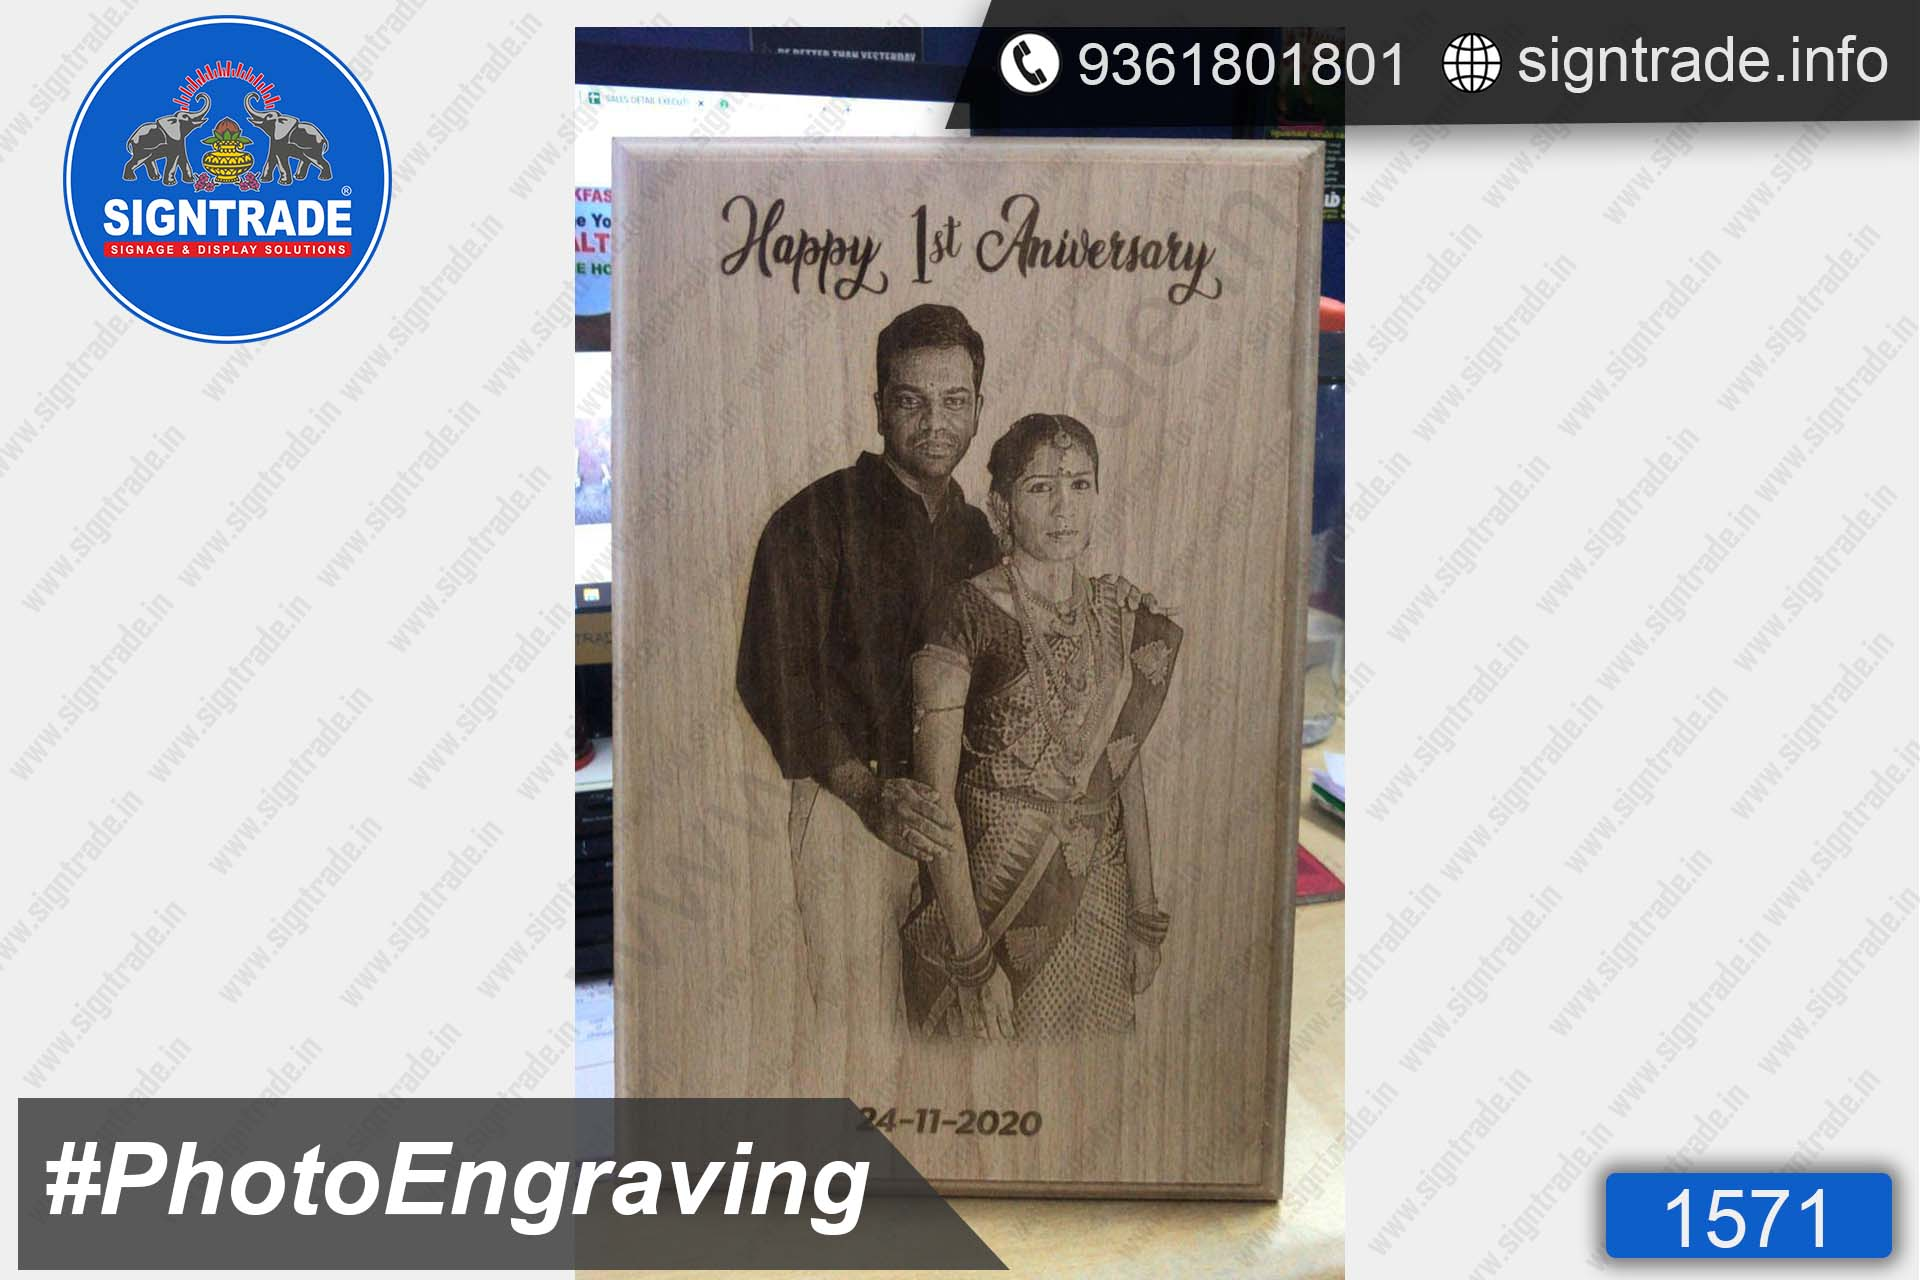 Personalized Photo Engraving on Wood - Couple Wooden Engraving